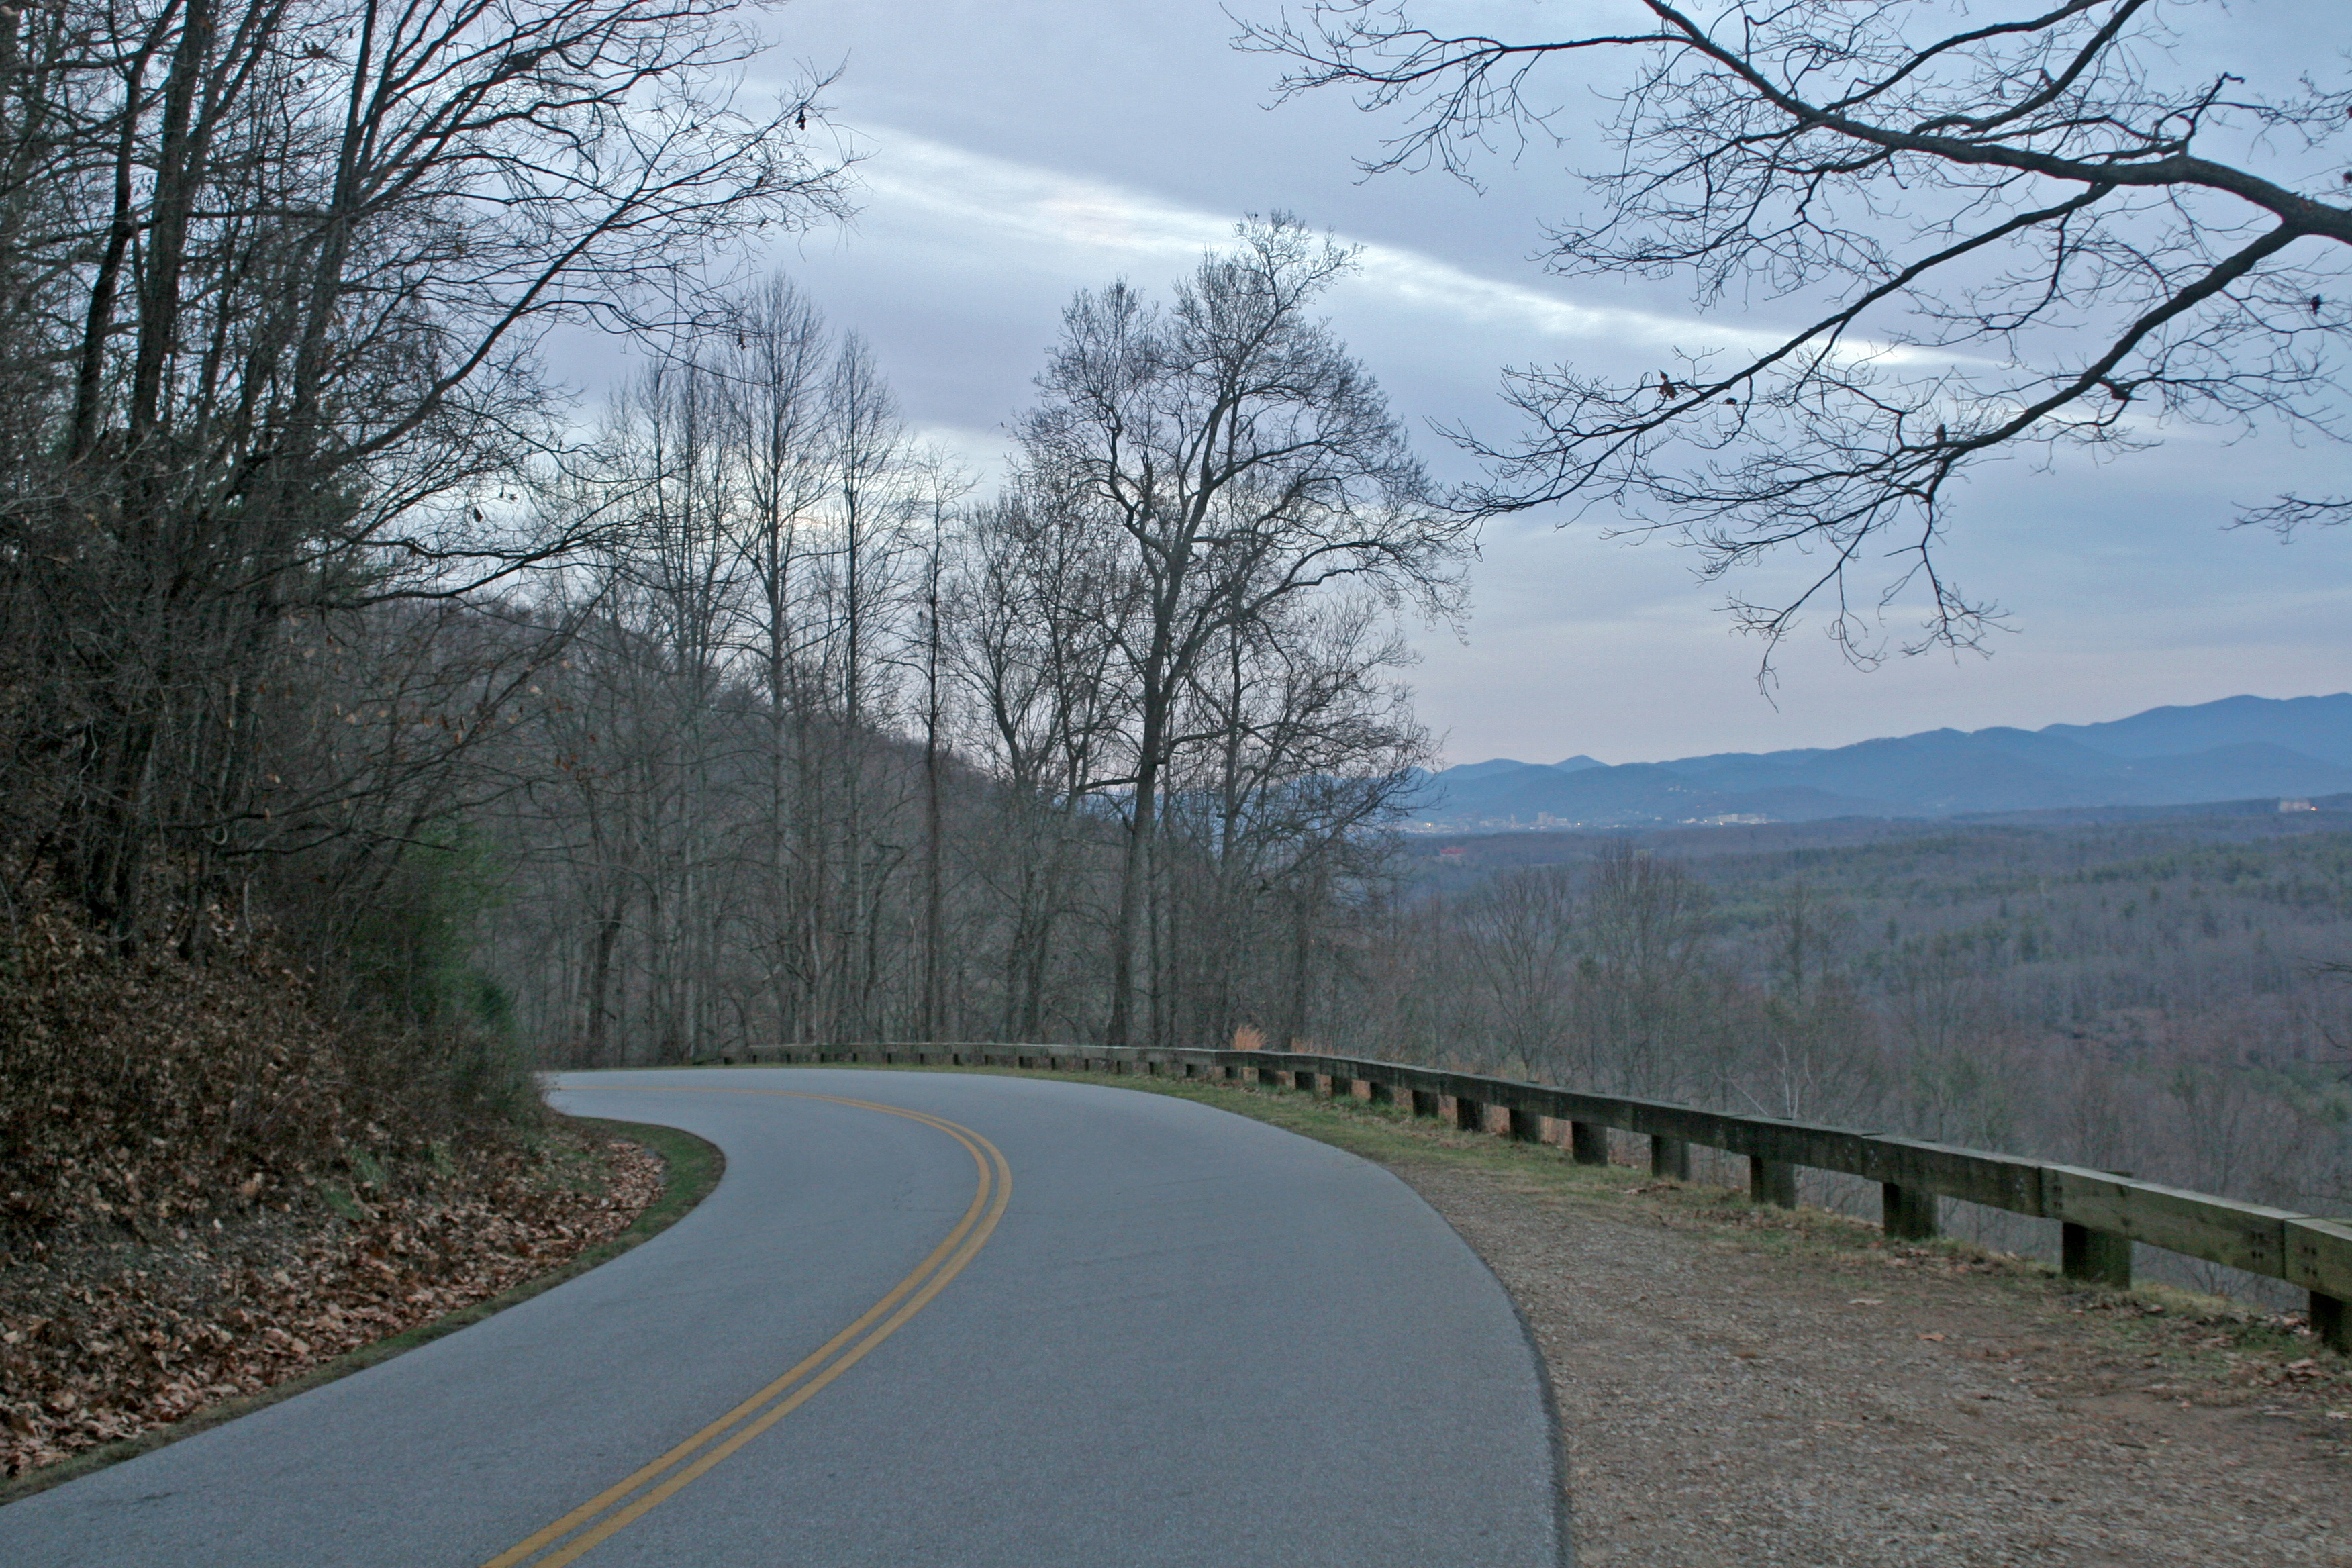 A corner of a road on the Blue Ridge Parkway.